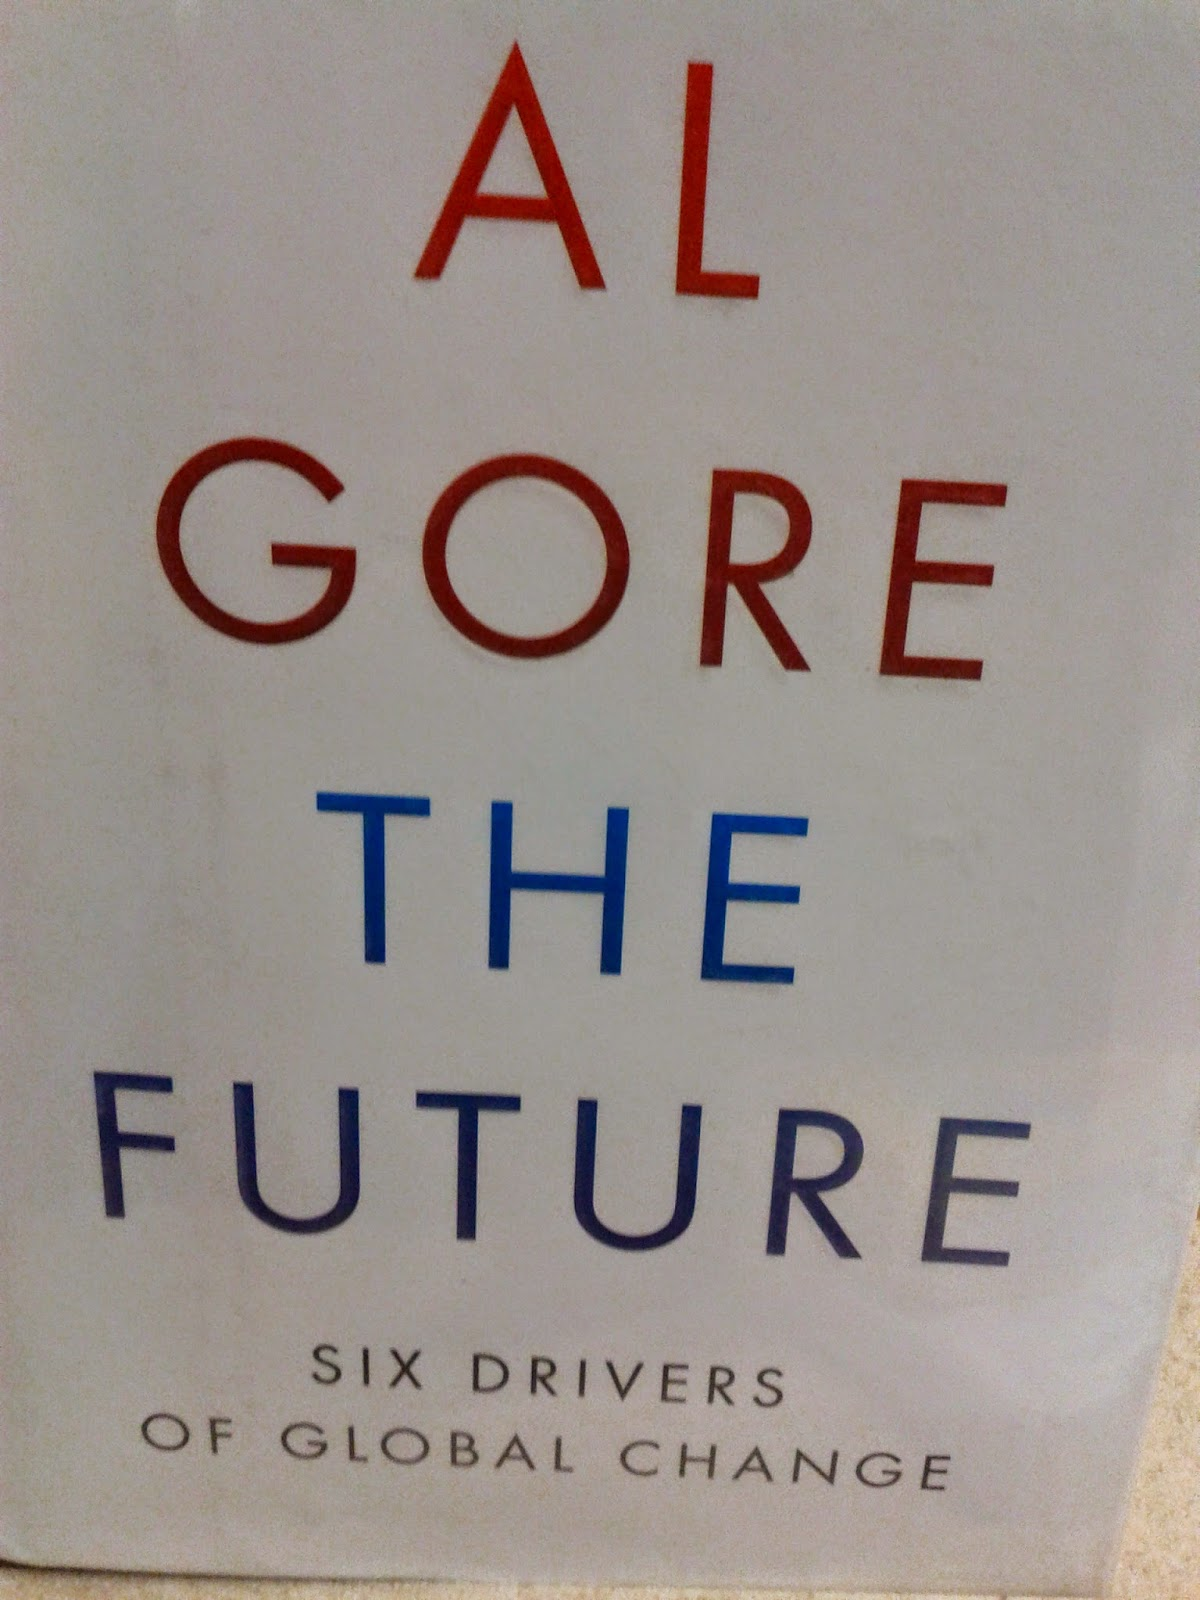 Al Gore, The Future, Six Drivers of Global Change